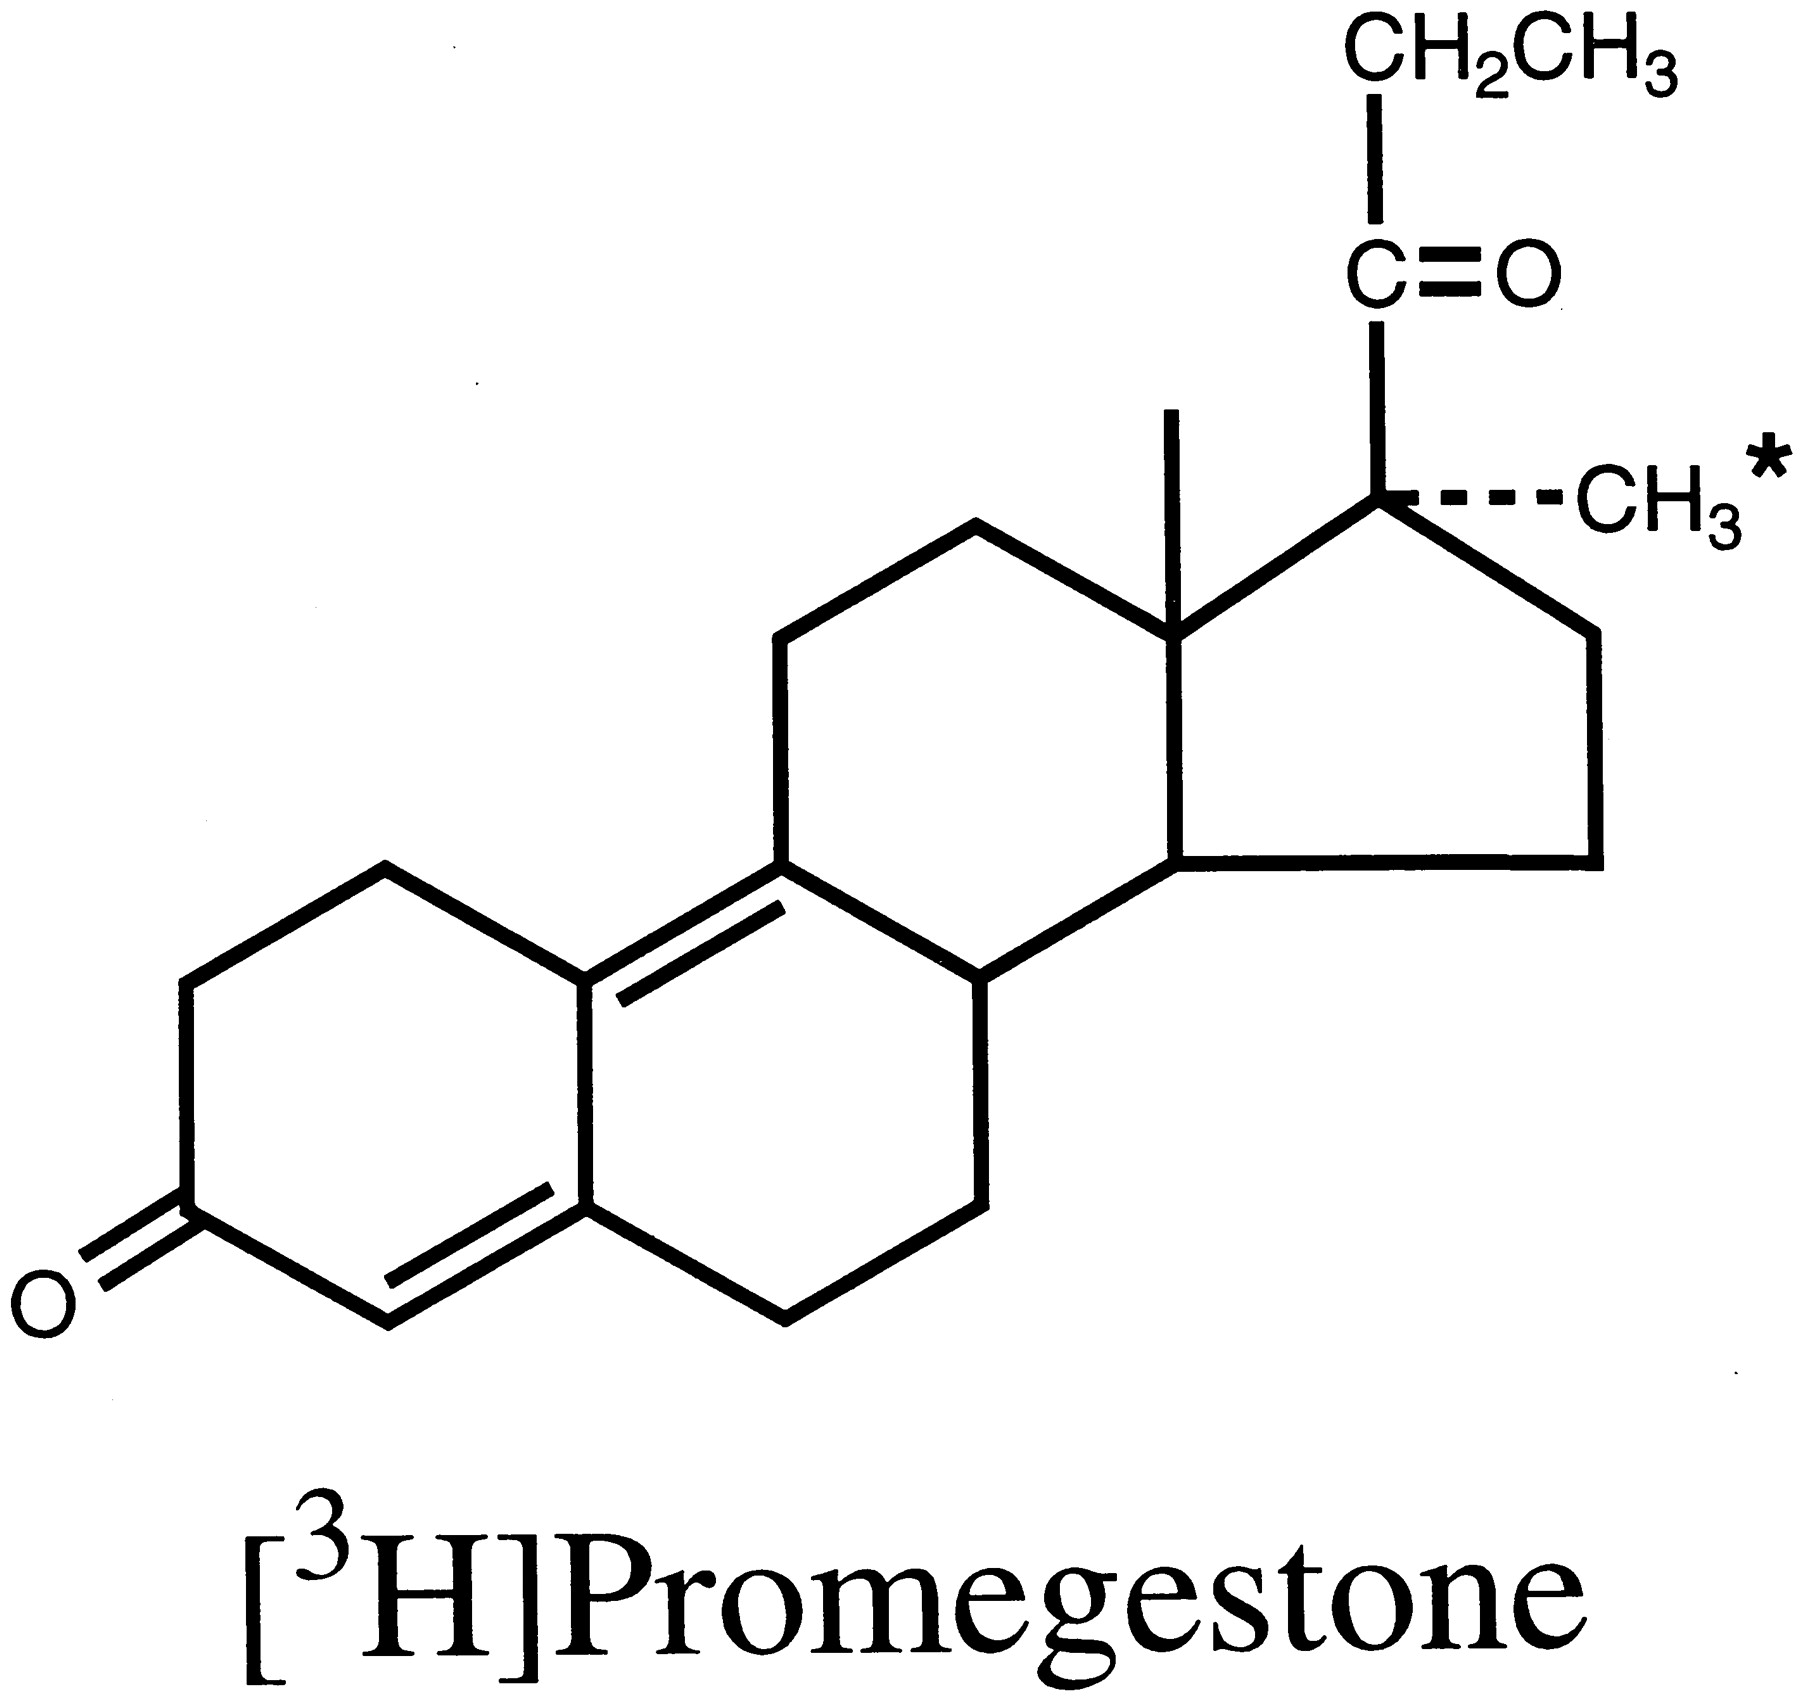 The Steroid Promegestone Is a Noncompetitive Antagonist of